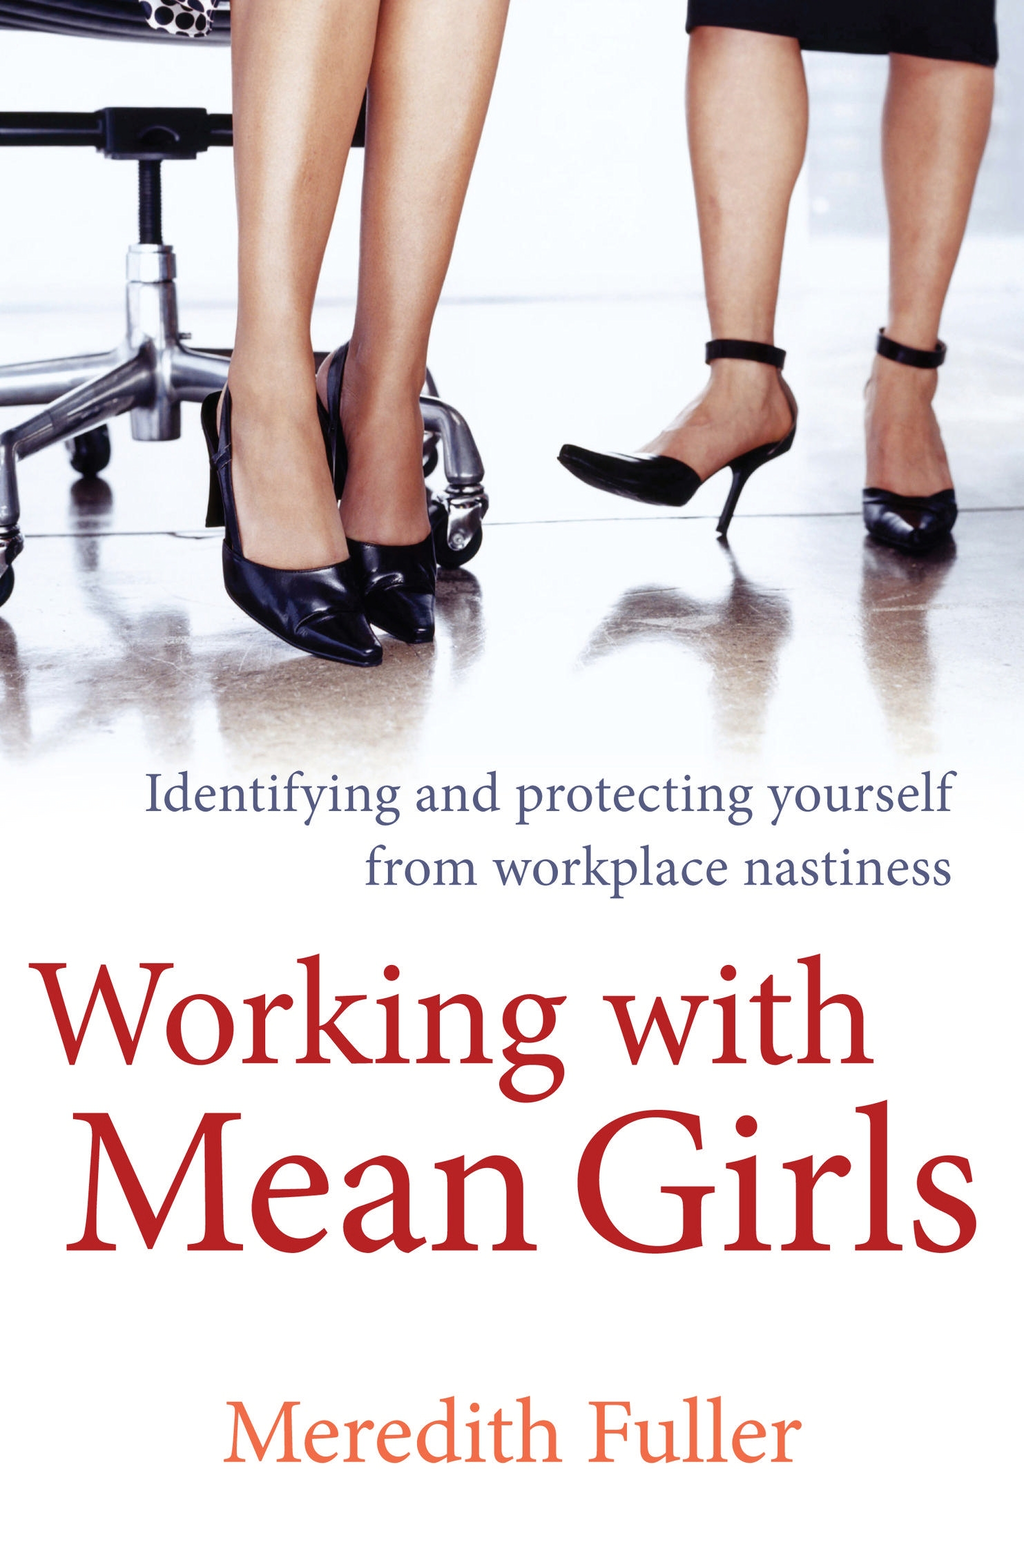 Working with Mean Girls By: Meredith Fuller